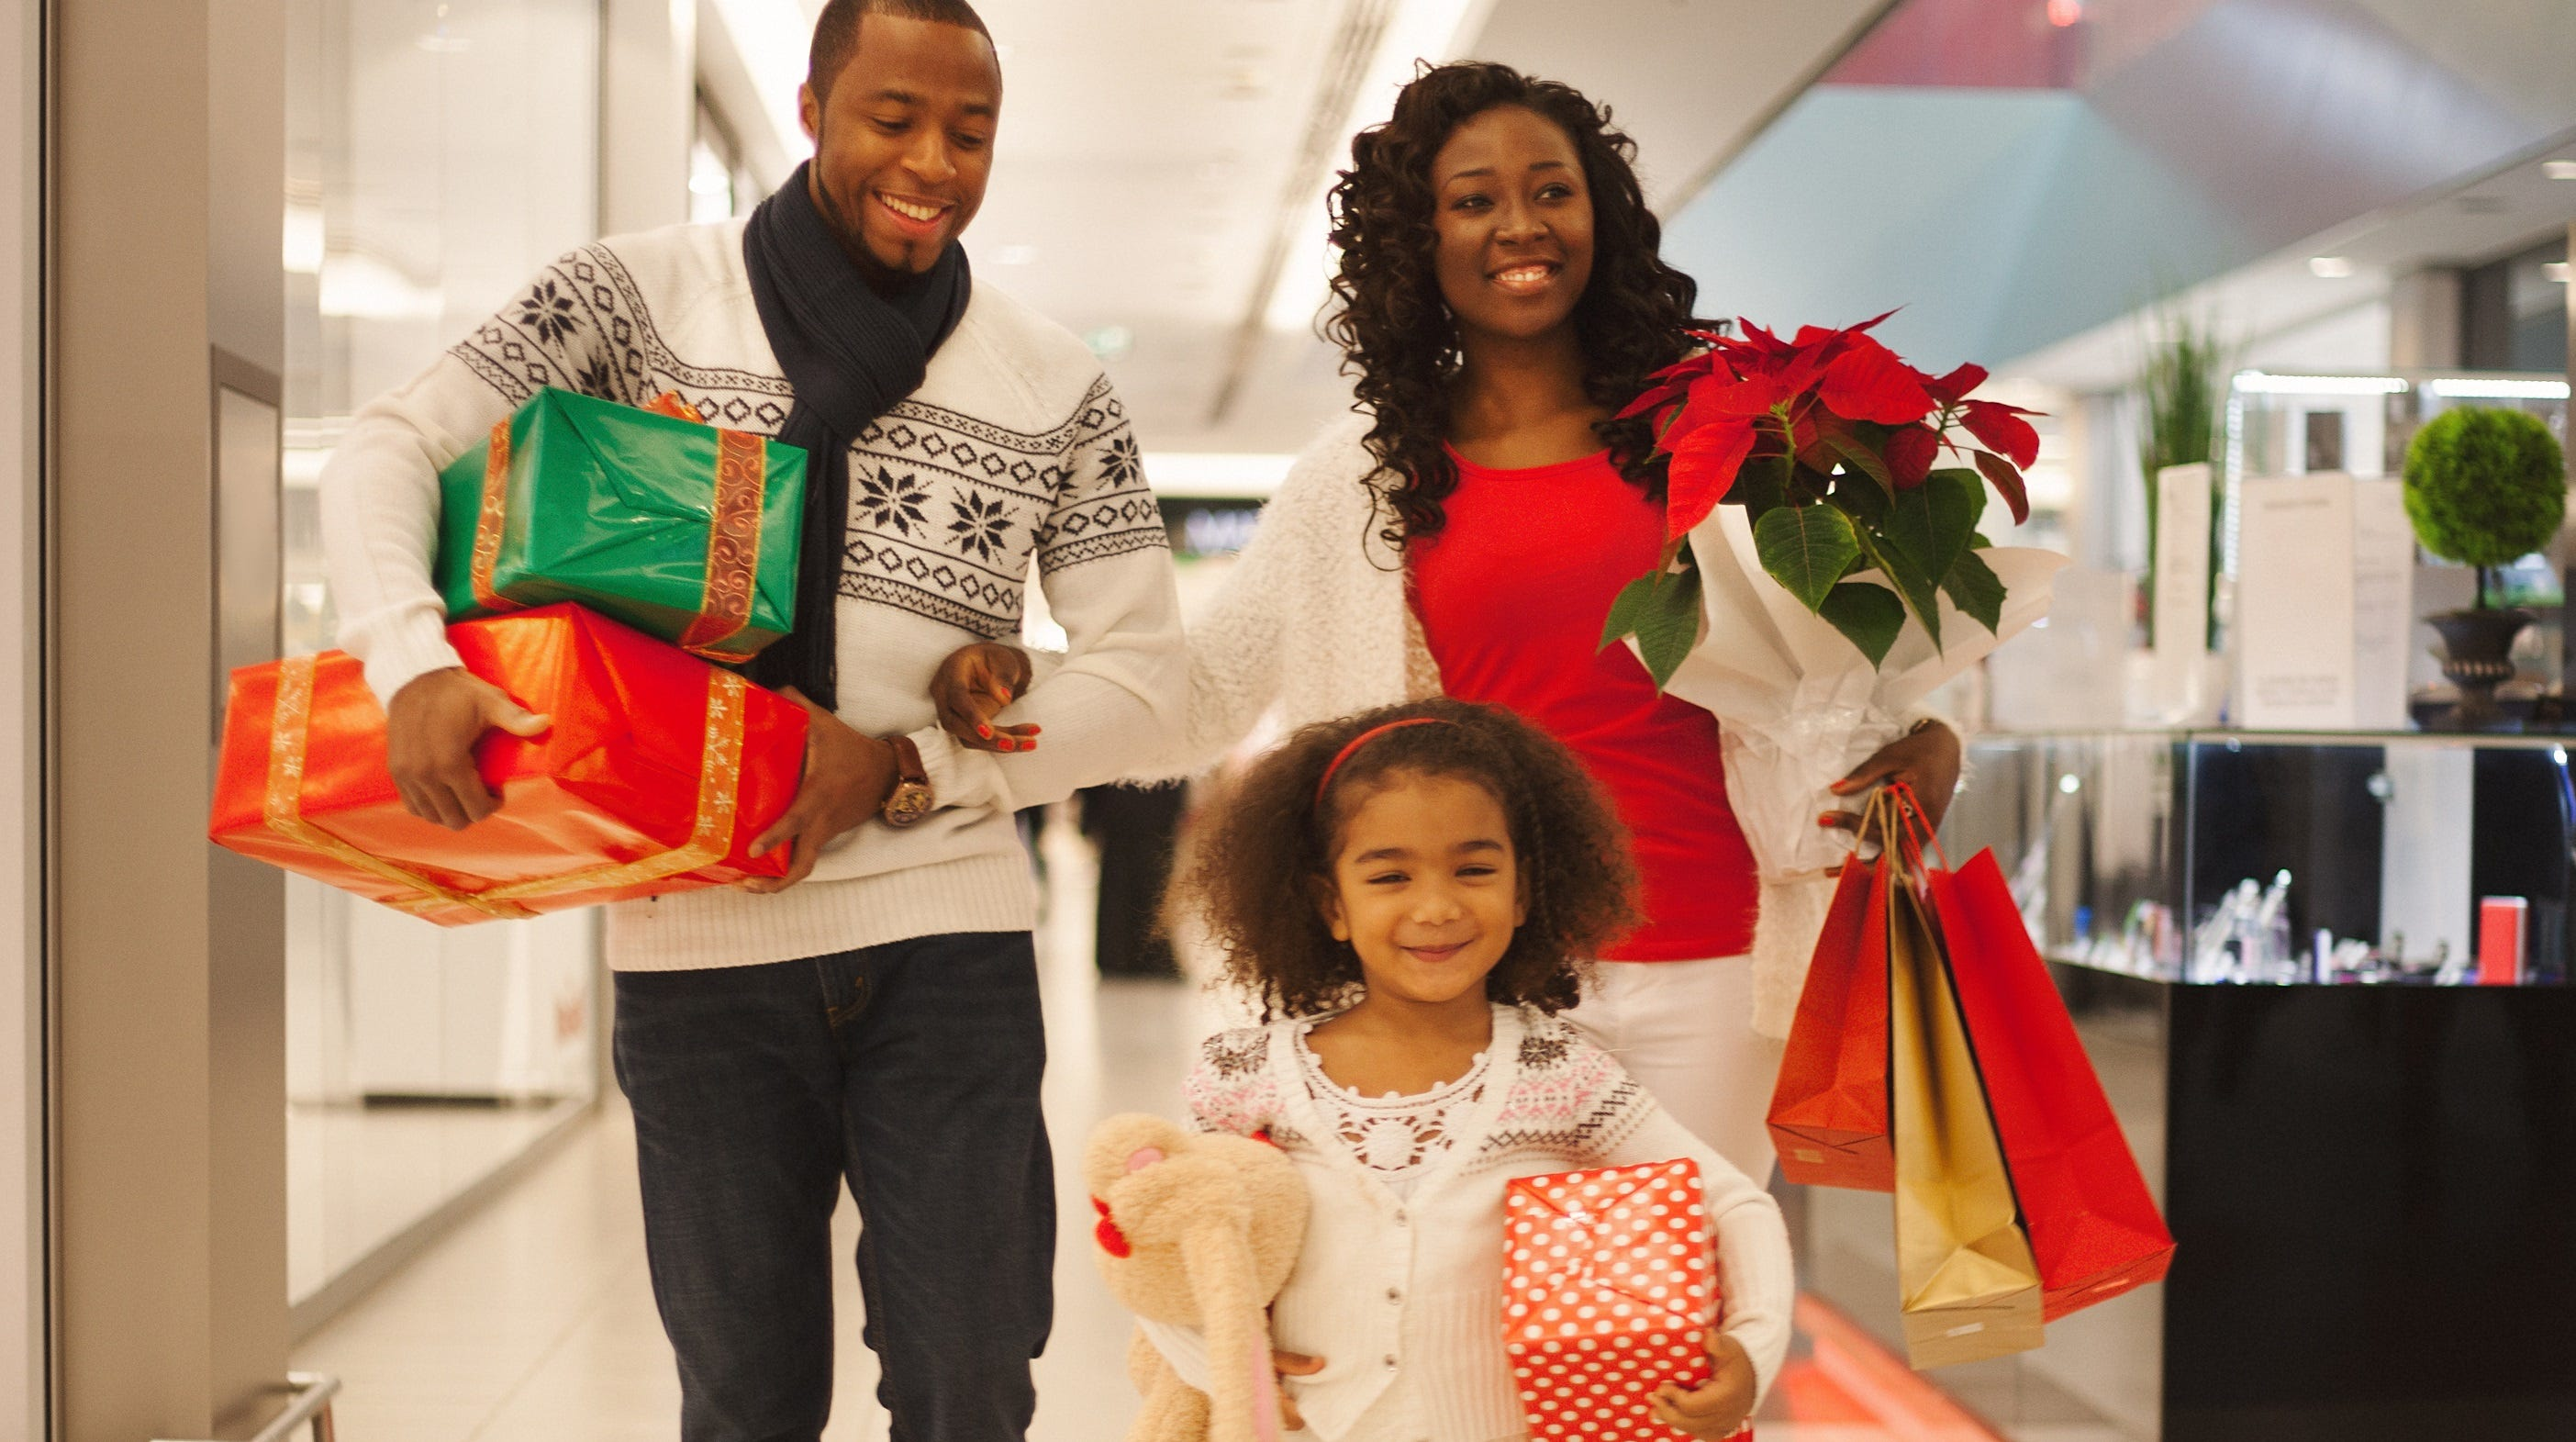 It is possible to have an enjoyable Black Friday shopping experience with kids in tow.